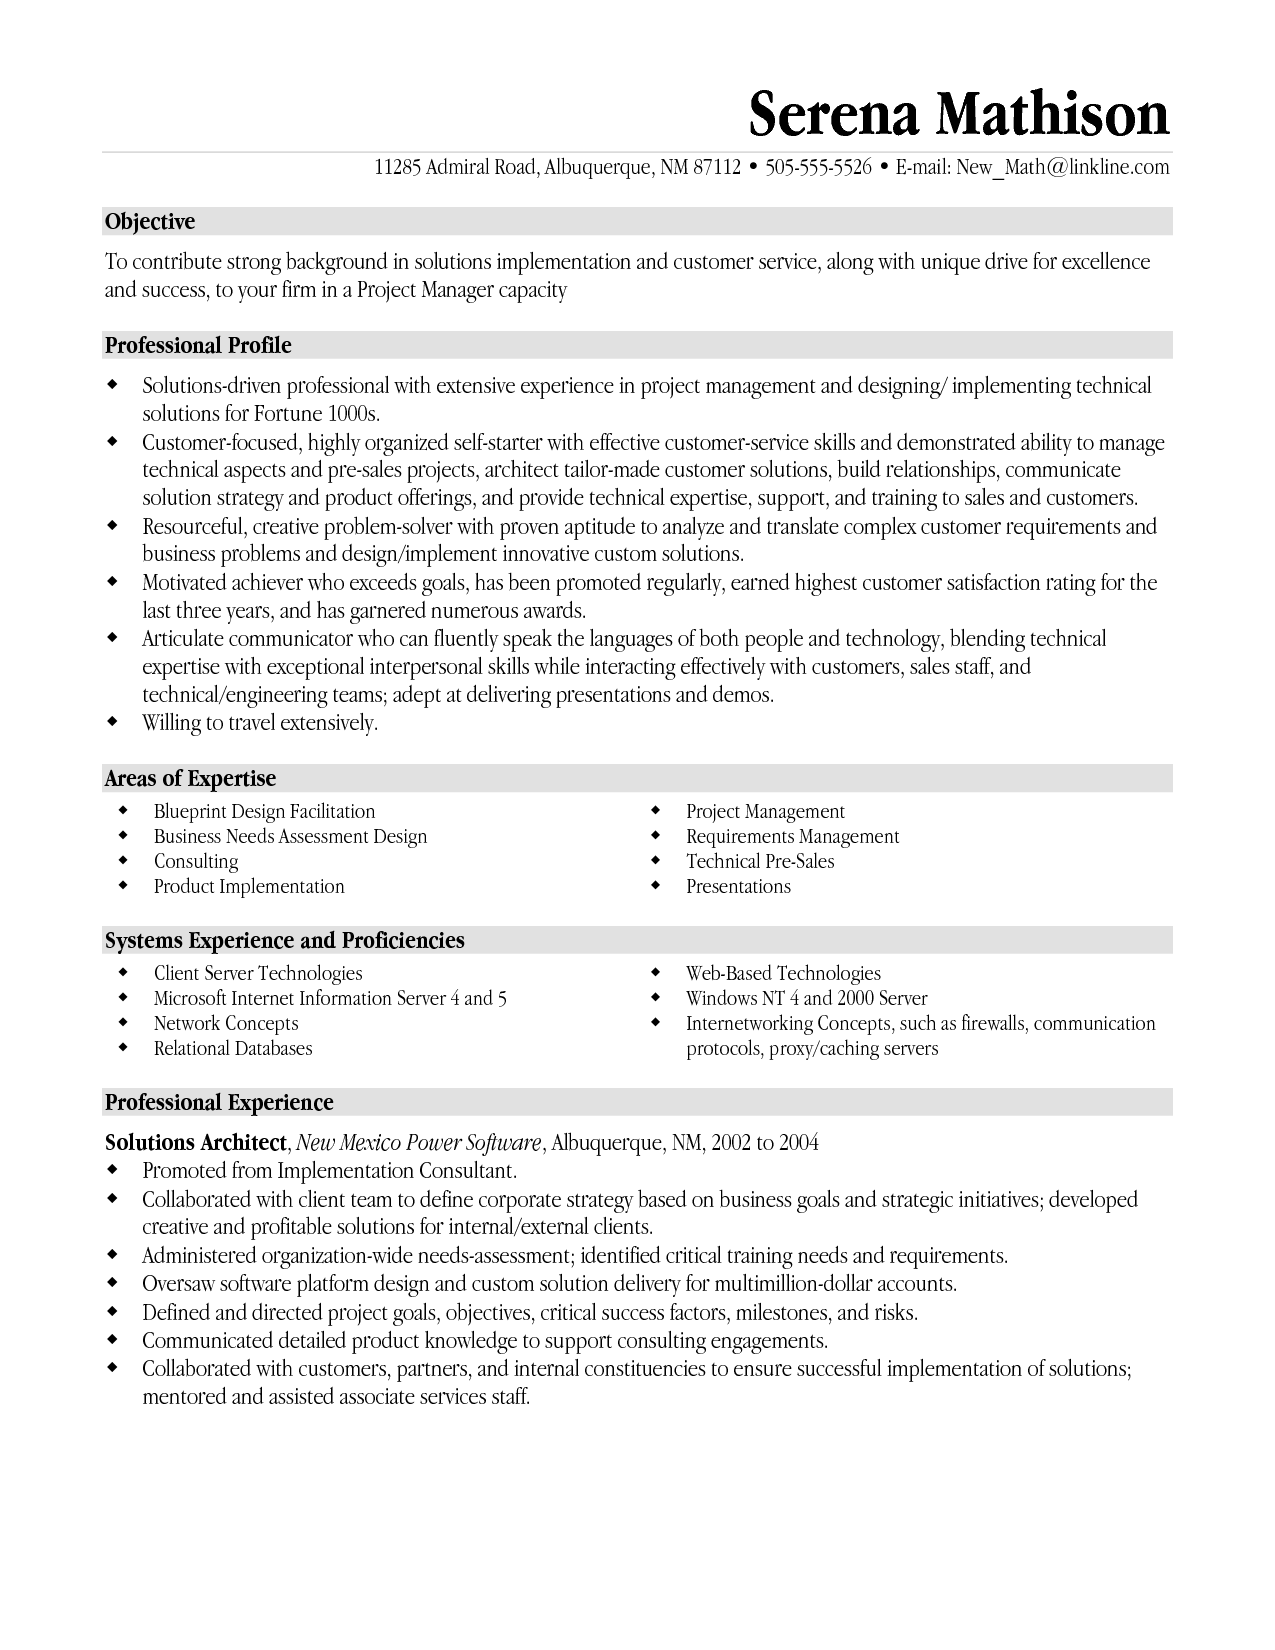 Resume Template Pinterest Resume Templates Project Manager Project Management